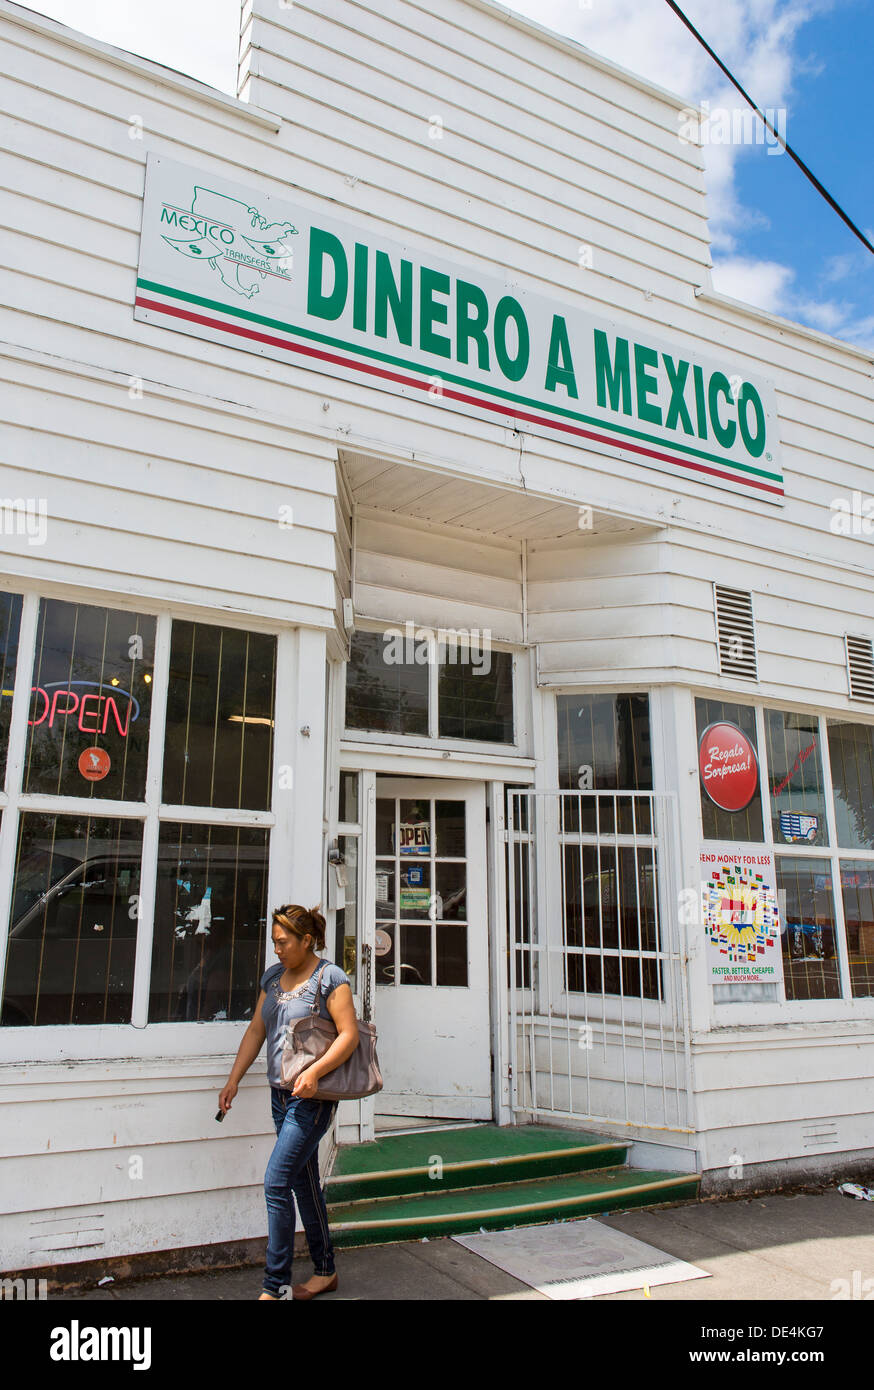 WOODBURN, OREGON, USA - Woman exits store with Dinero a Mexico sign that offers remittance service to Mexican immigrants. - Stock Image